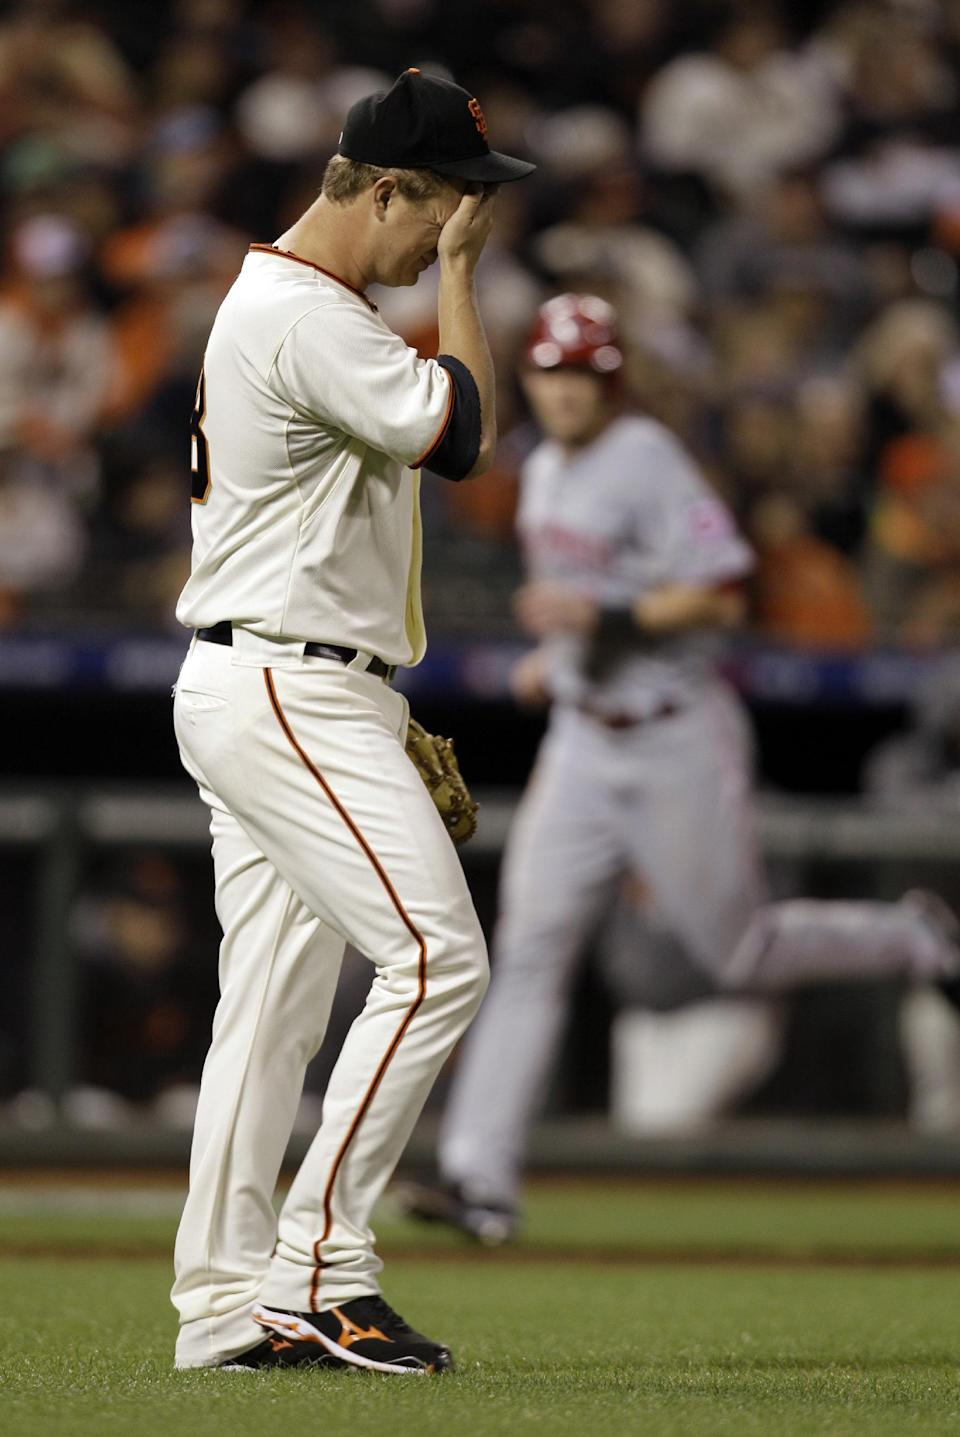 San Francisco Giants pitcher Matt Cain reacts after giving up a two-run home home to Cincinnati Reds' Brandon Phillips in the third inning of Game 1 of the National League division baseball series in San Francisco, Saturday, Oct. 6, 2012. (AP Photo/Eric Risberg)